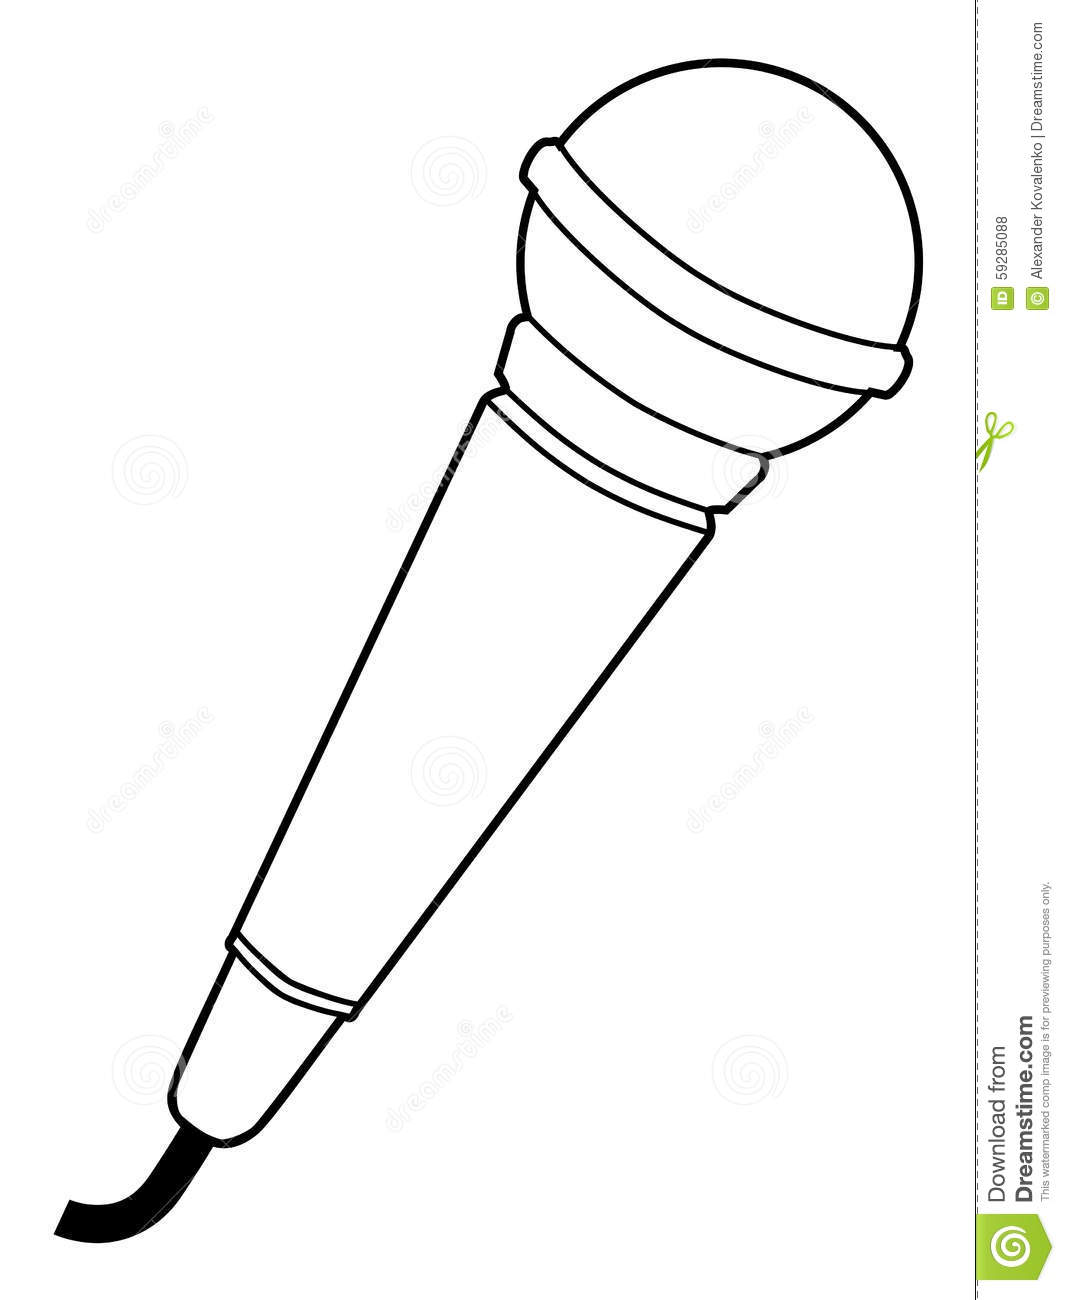 microphone sketches sketch coloring page